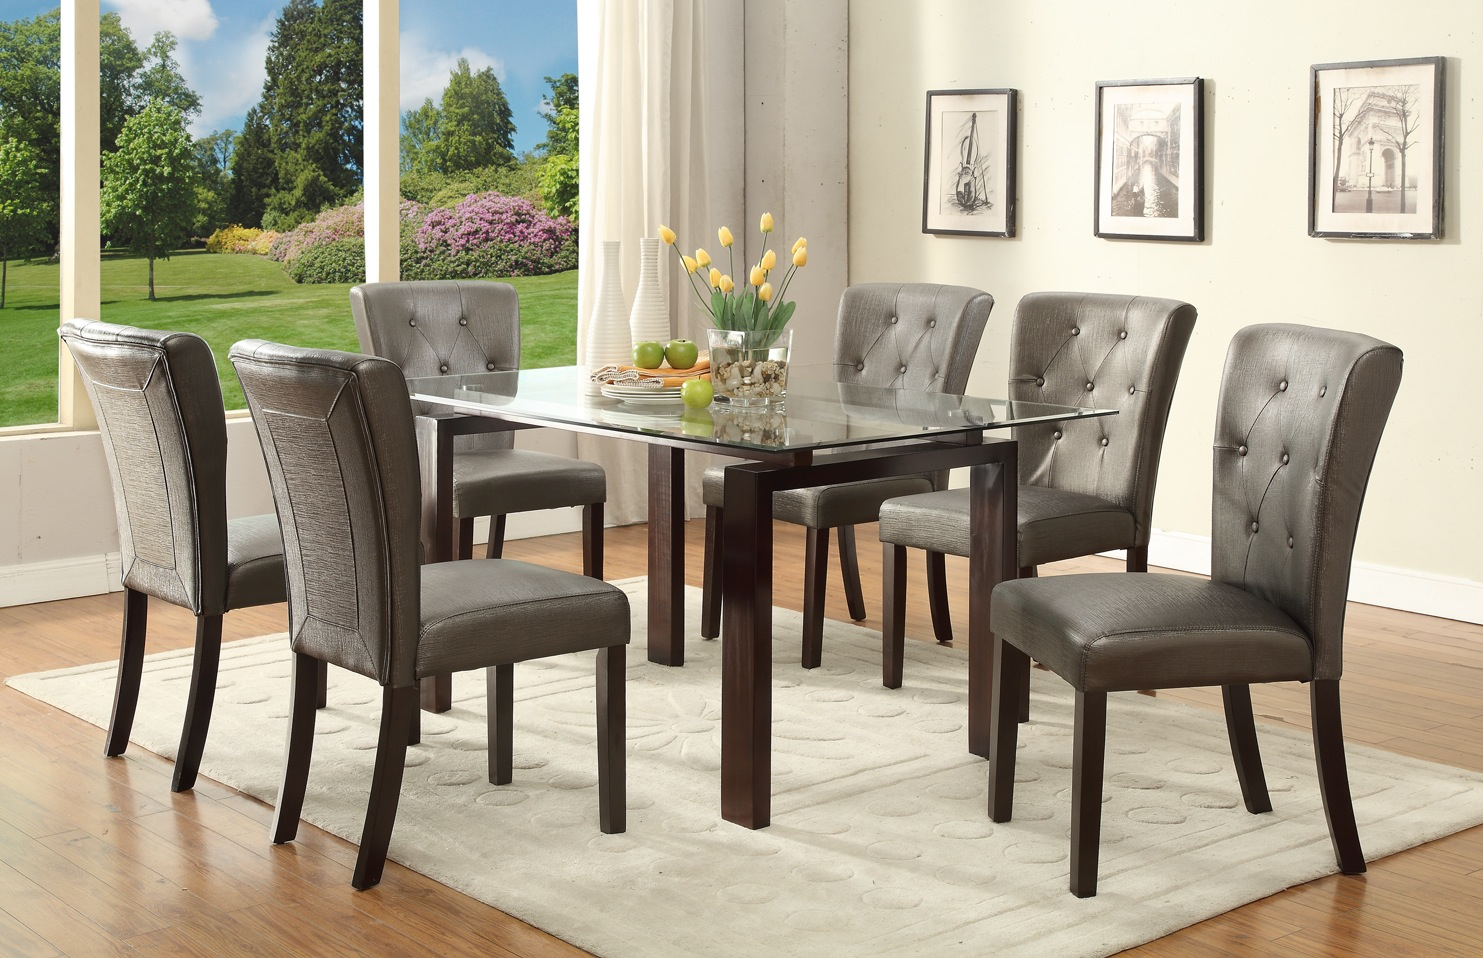 Tips For Choosing The Right Dining Furniture